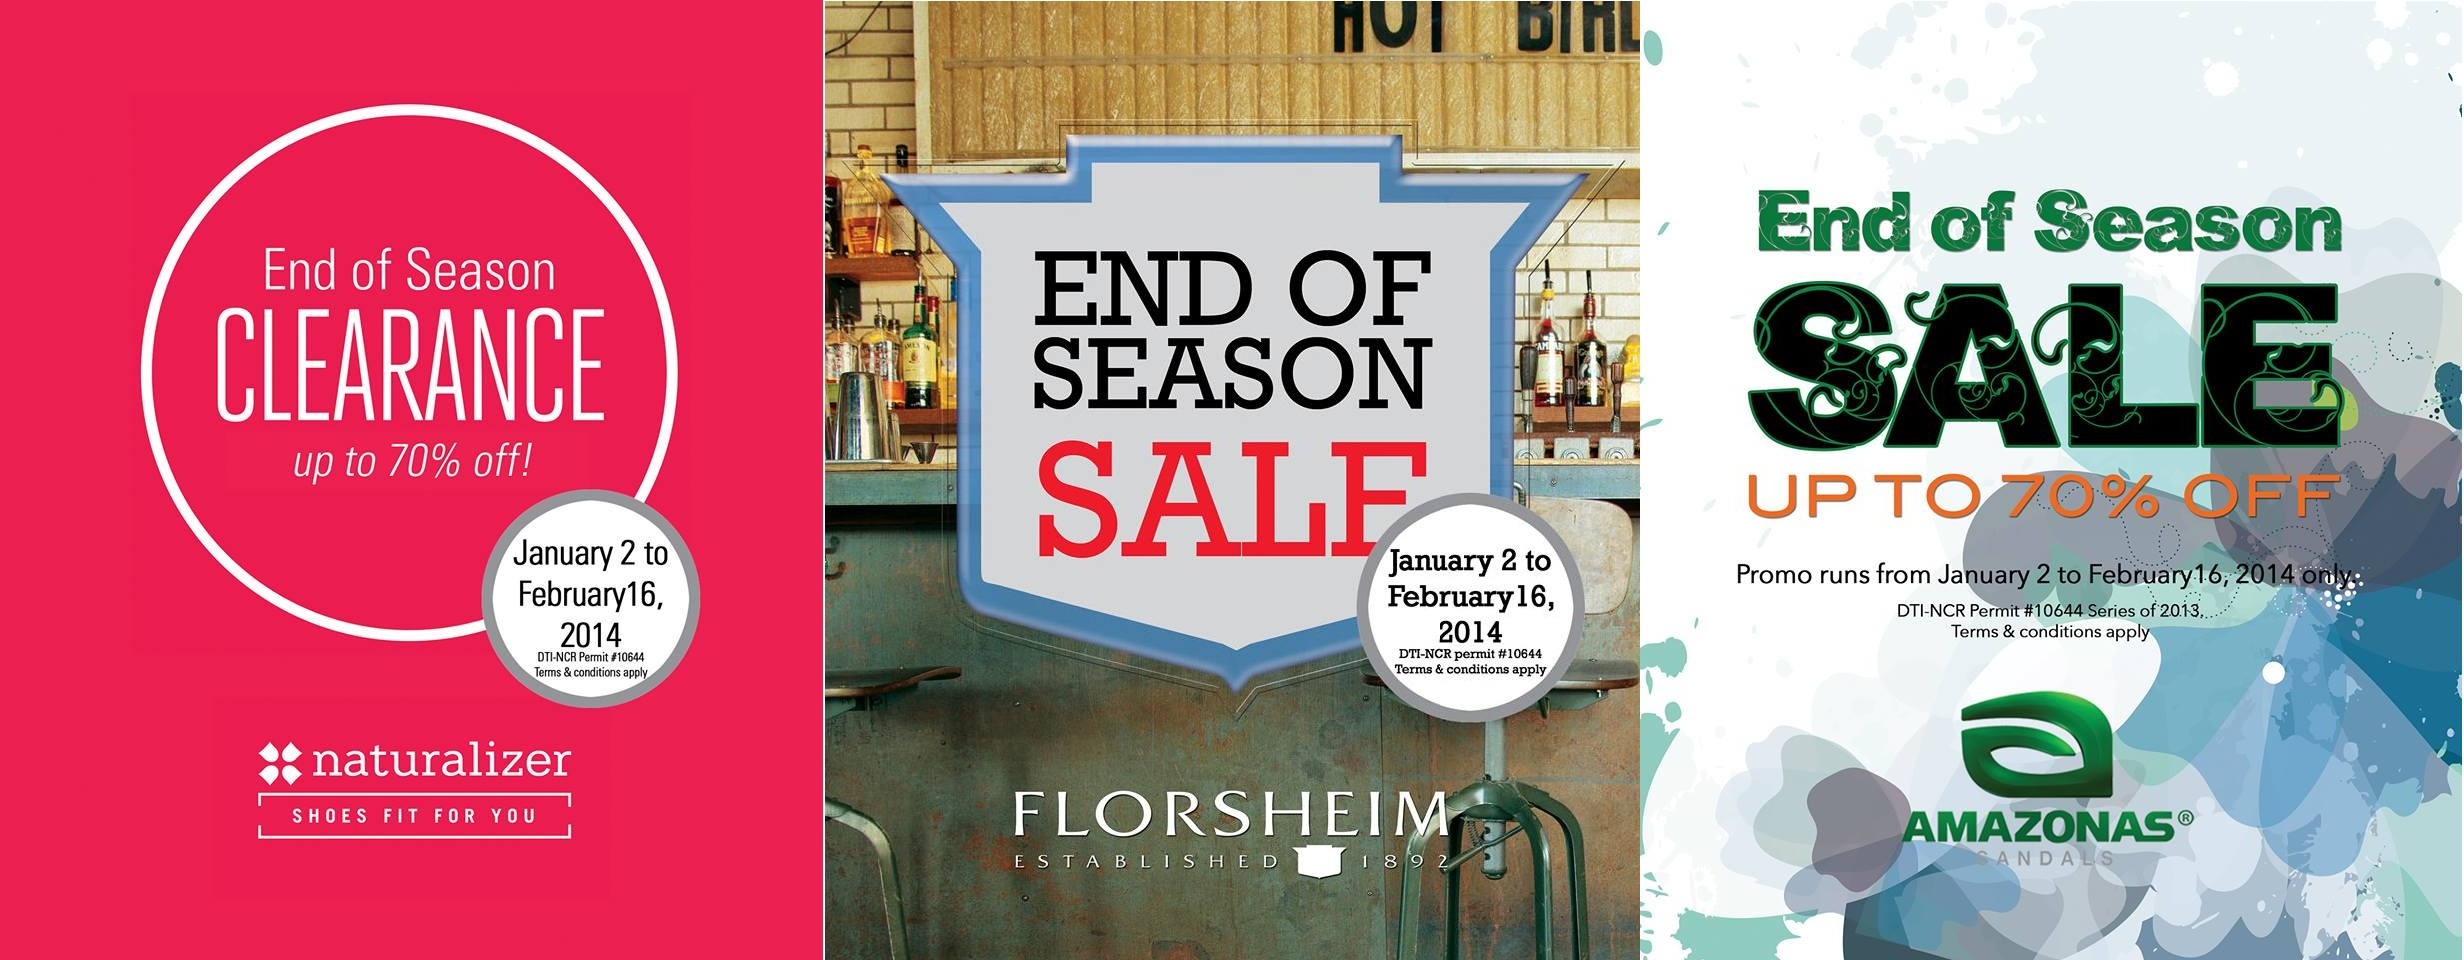 Naturalizer, Florsheim, Amazonas End of Season Sale January - February 2014